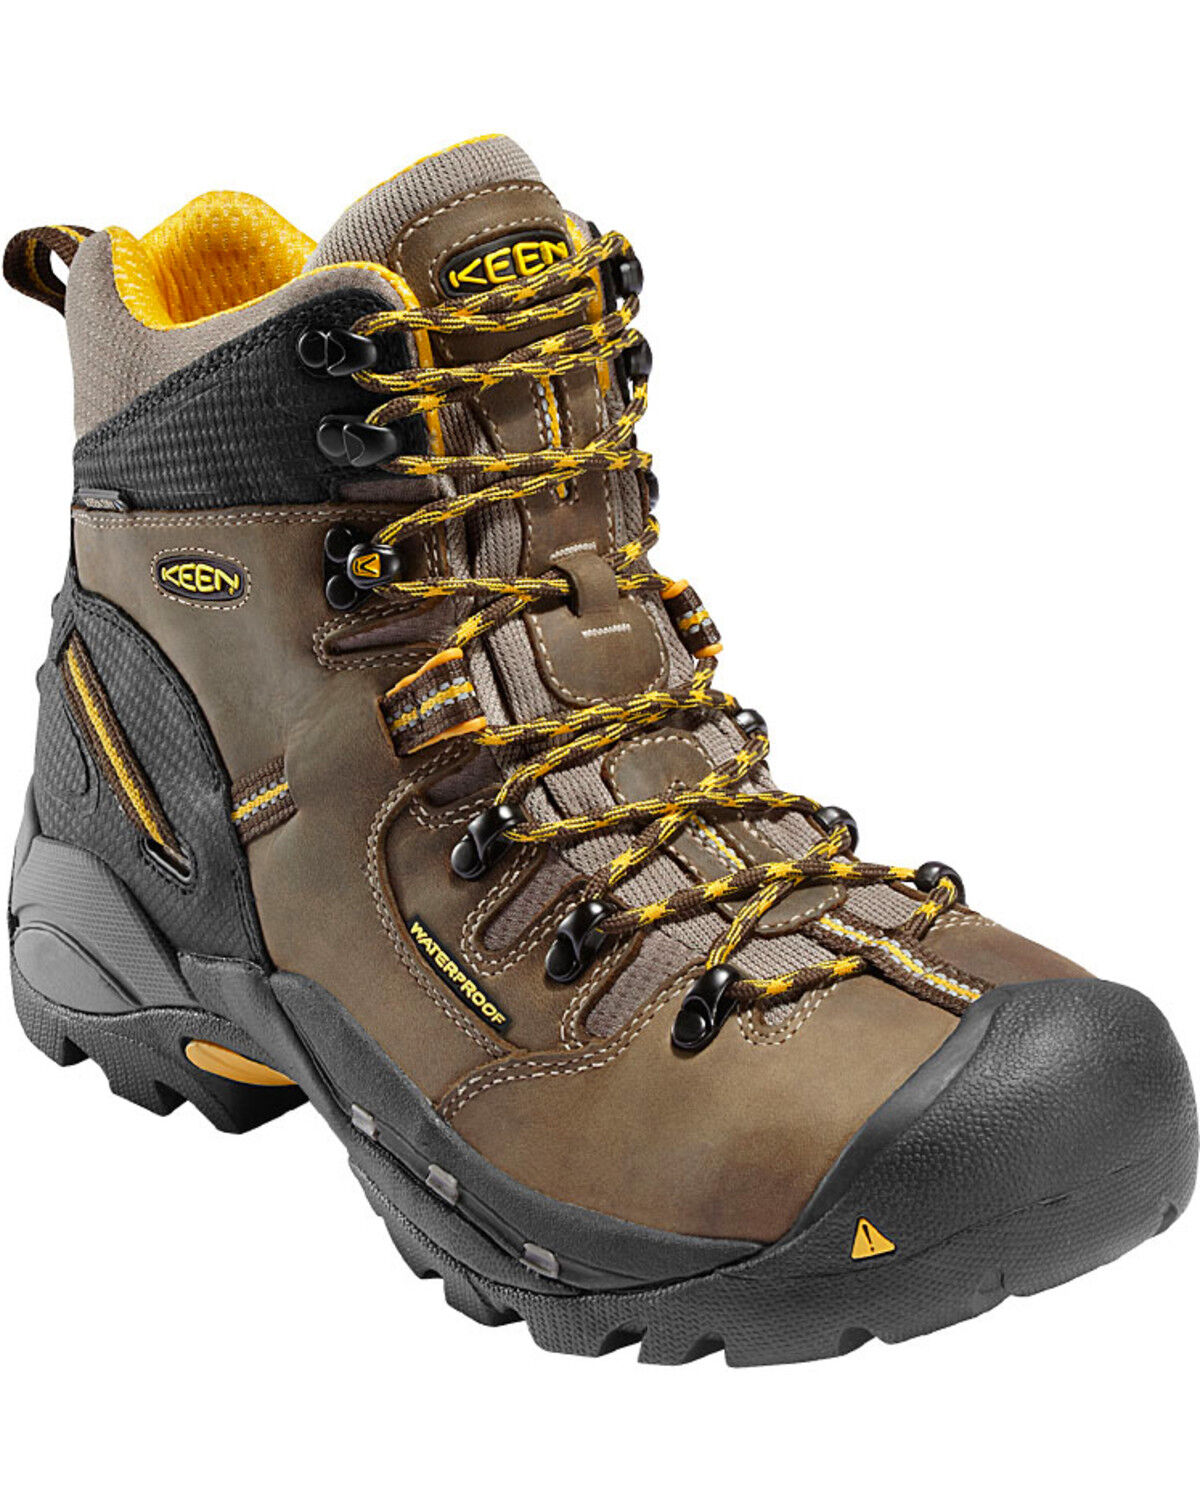 Keen Mens Boots Clearance